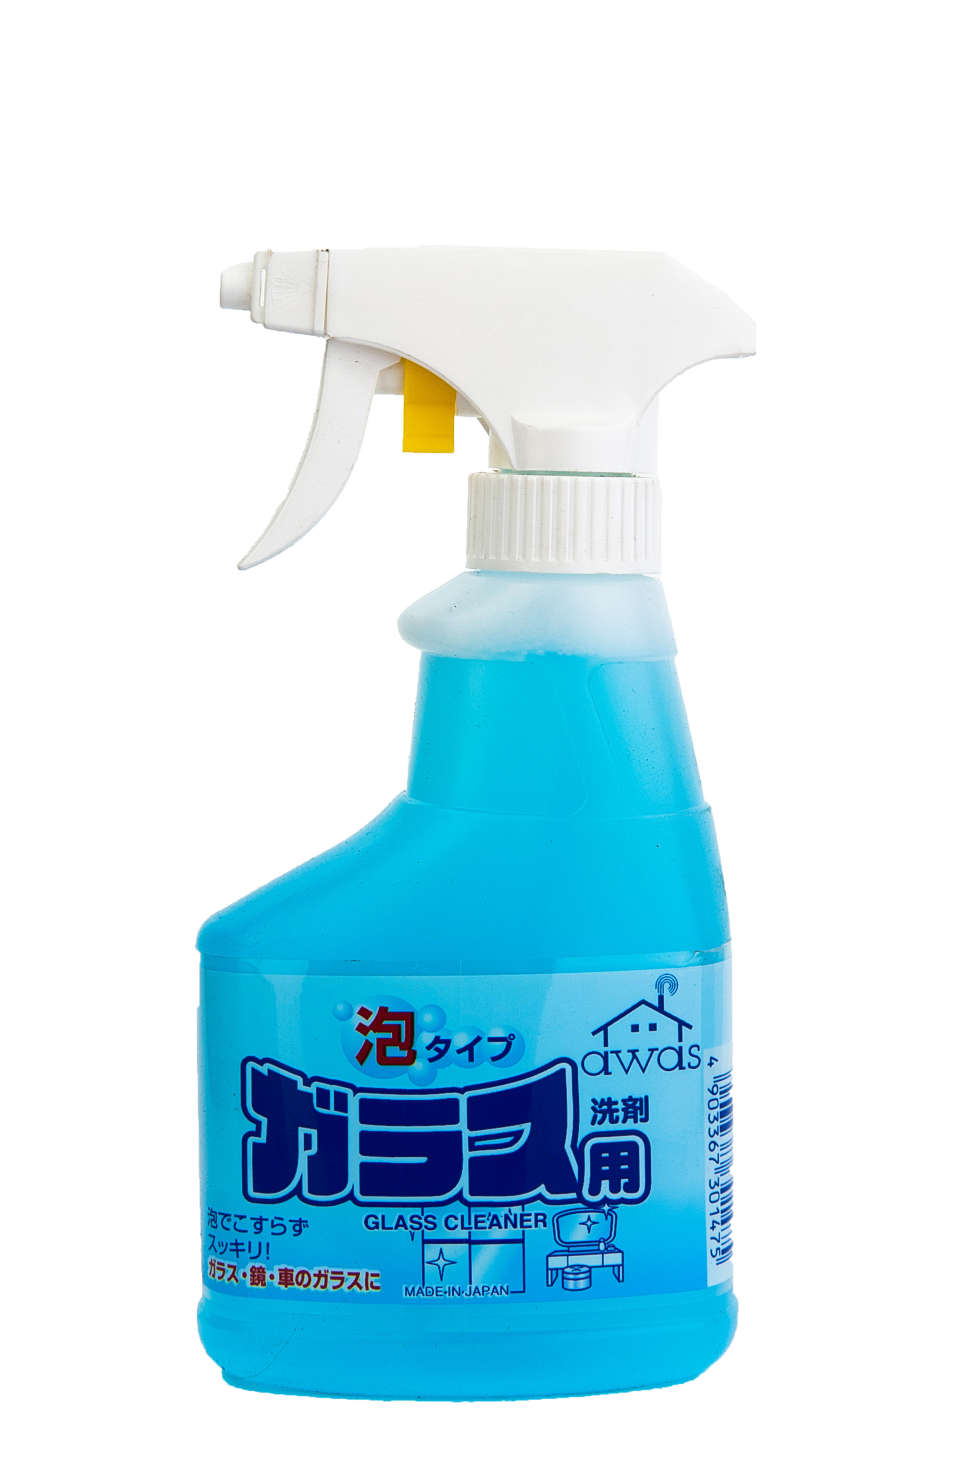 RS Glass cleaner spray